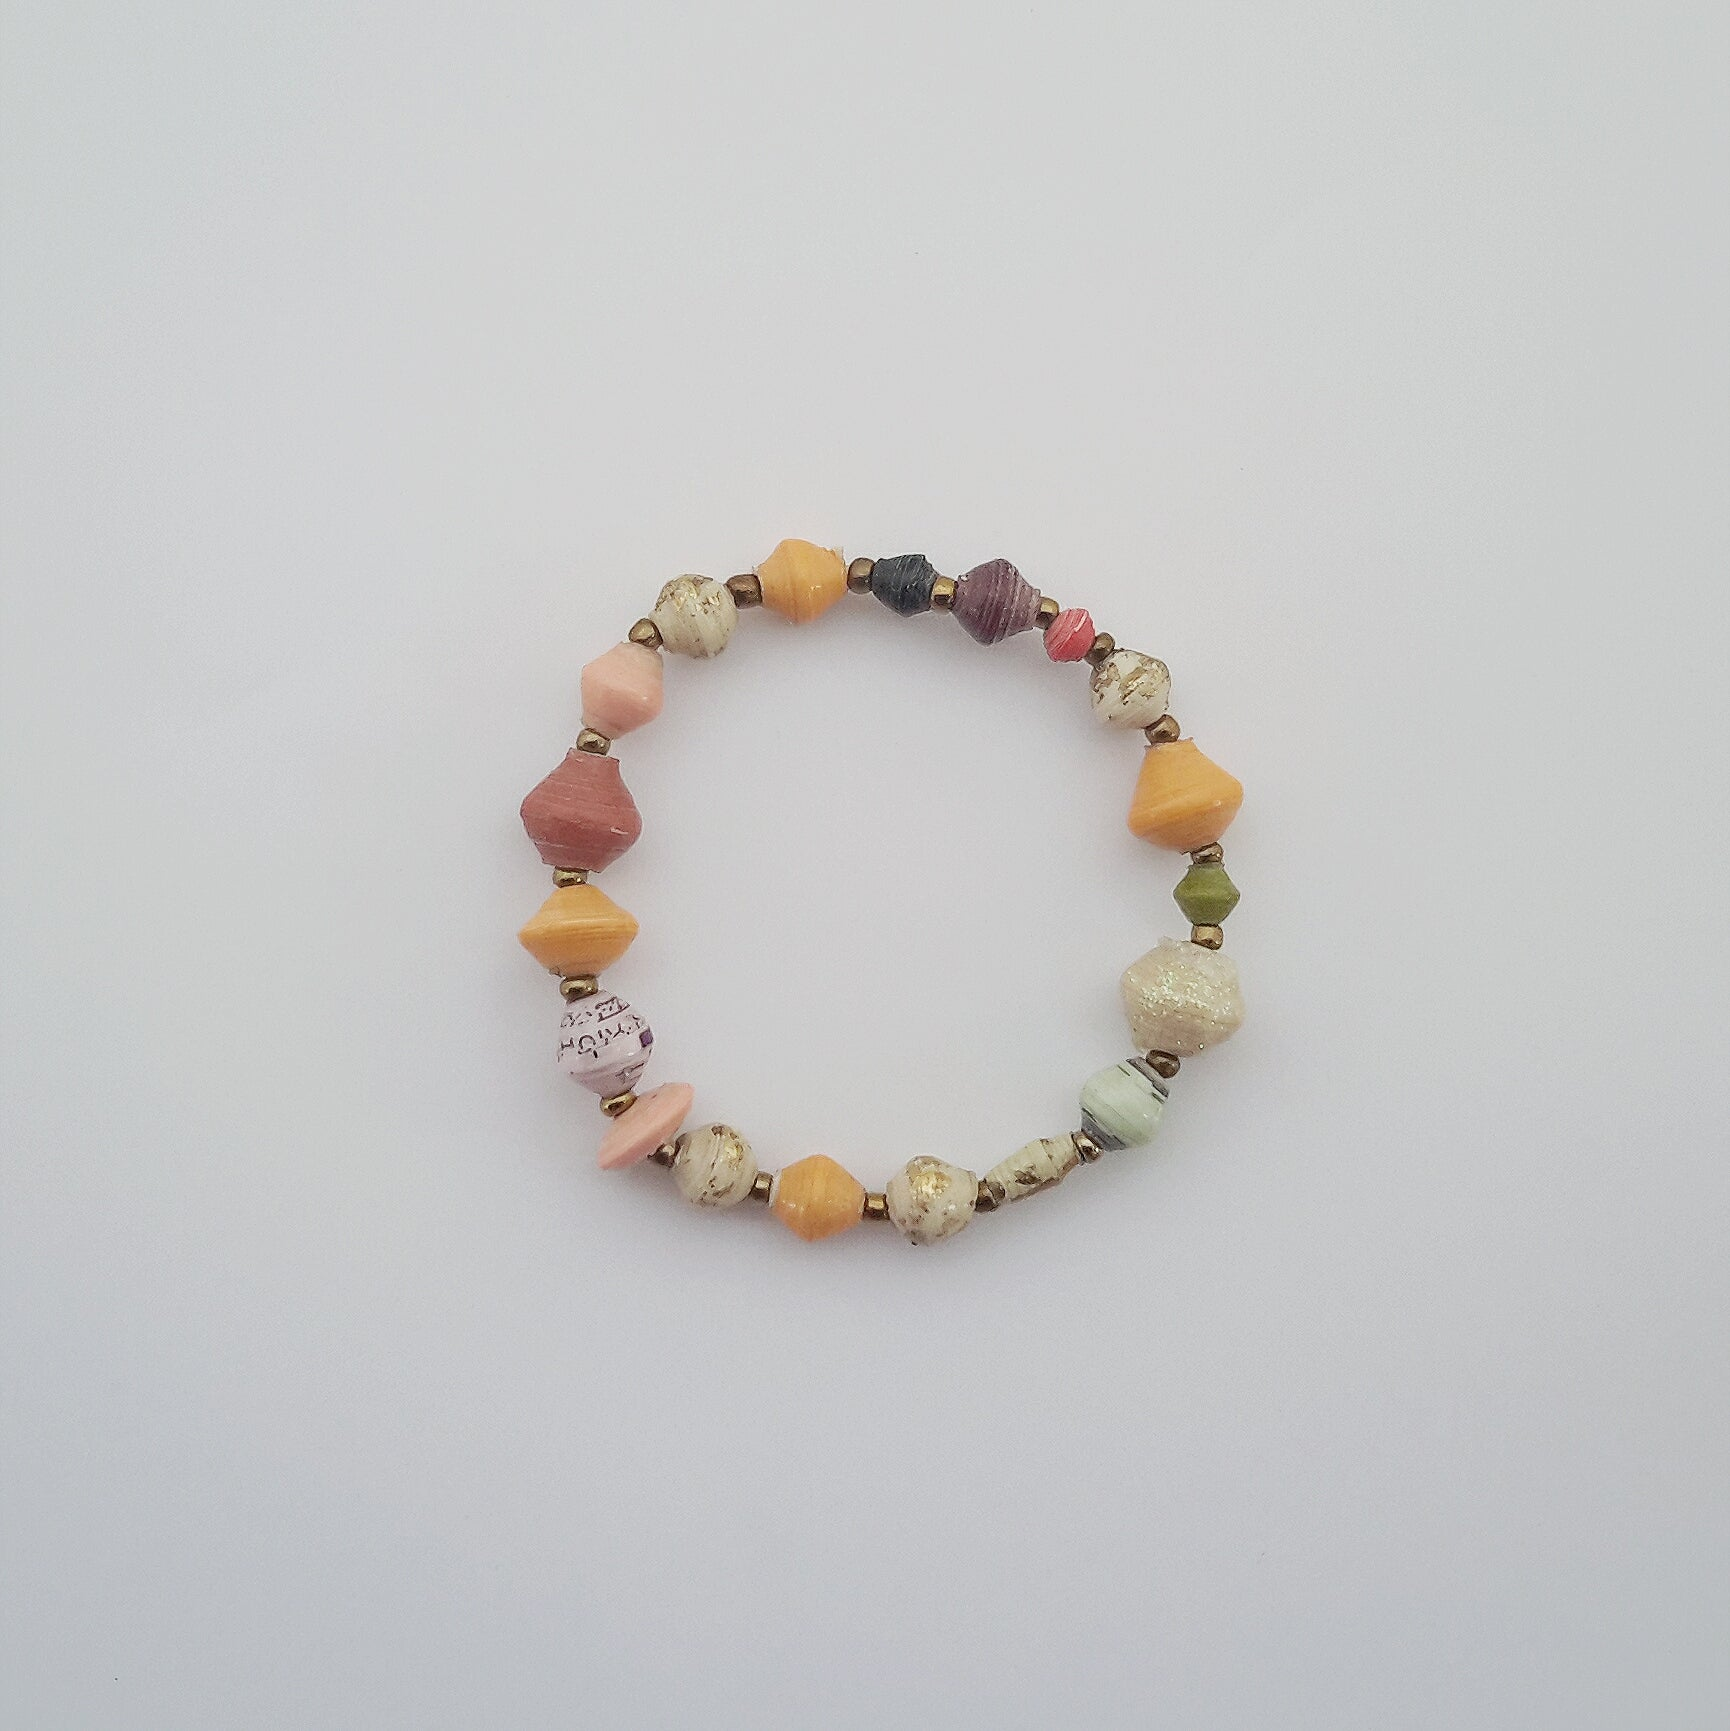 Hand made design bracelet with paper beads of different natural colors made out of recycled paper in Uganda by principles of fair trade, ethical and sustainable fashion, empowering women of post war area, by Finnish / Scandinavian brand, Agulu Paper Beads. Eettinen käsintehty design rannekoru luonnonläheisillä väreillä olevista paperihelmistä, jotka on tehty kierrätyspaperista reilun kaupan periaattein työllistämällä kehitysmaan nasia.